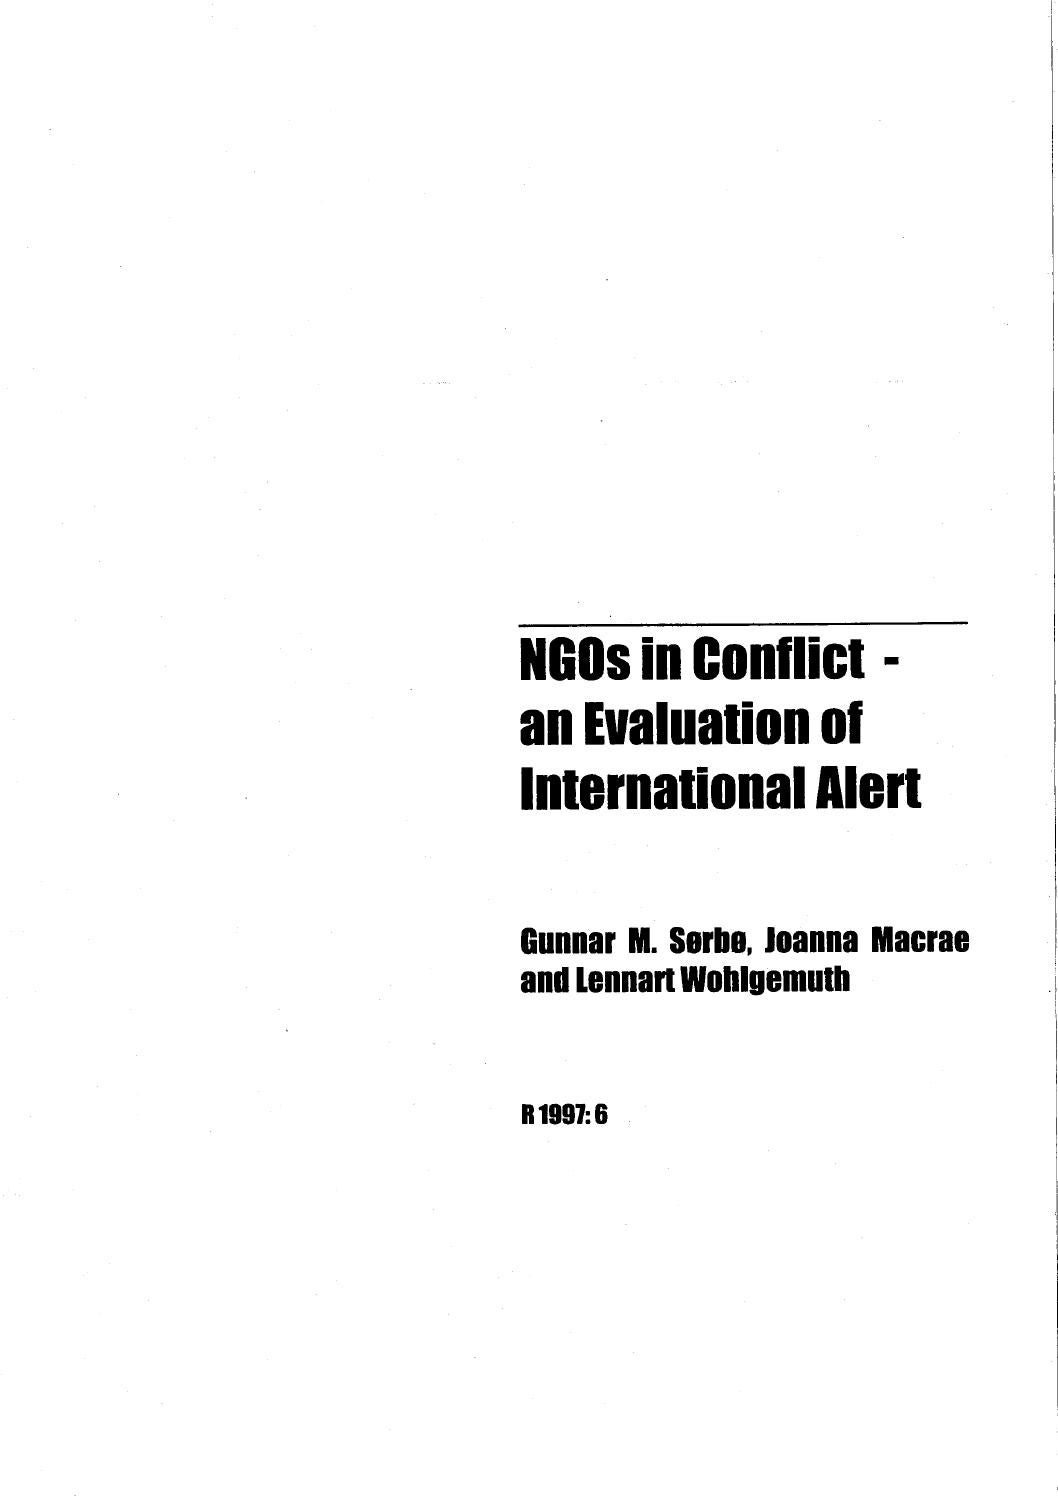 NGOs in conflict- an evaluation of International Alert by